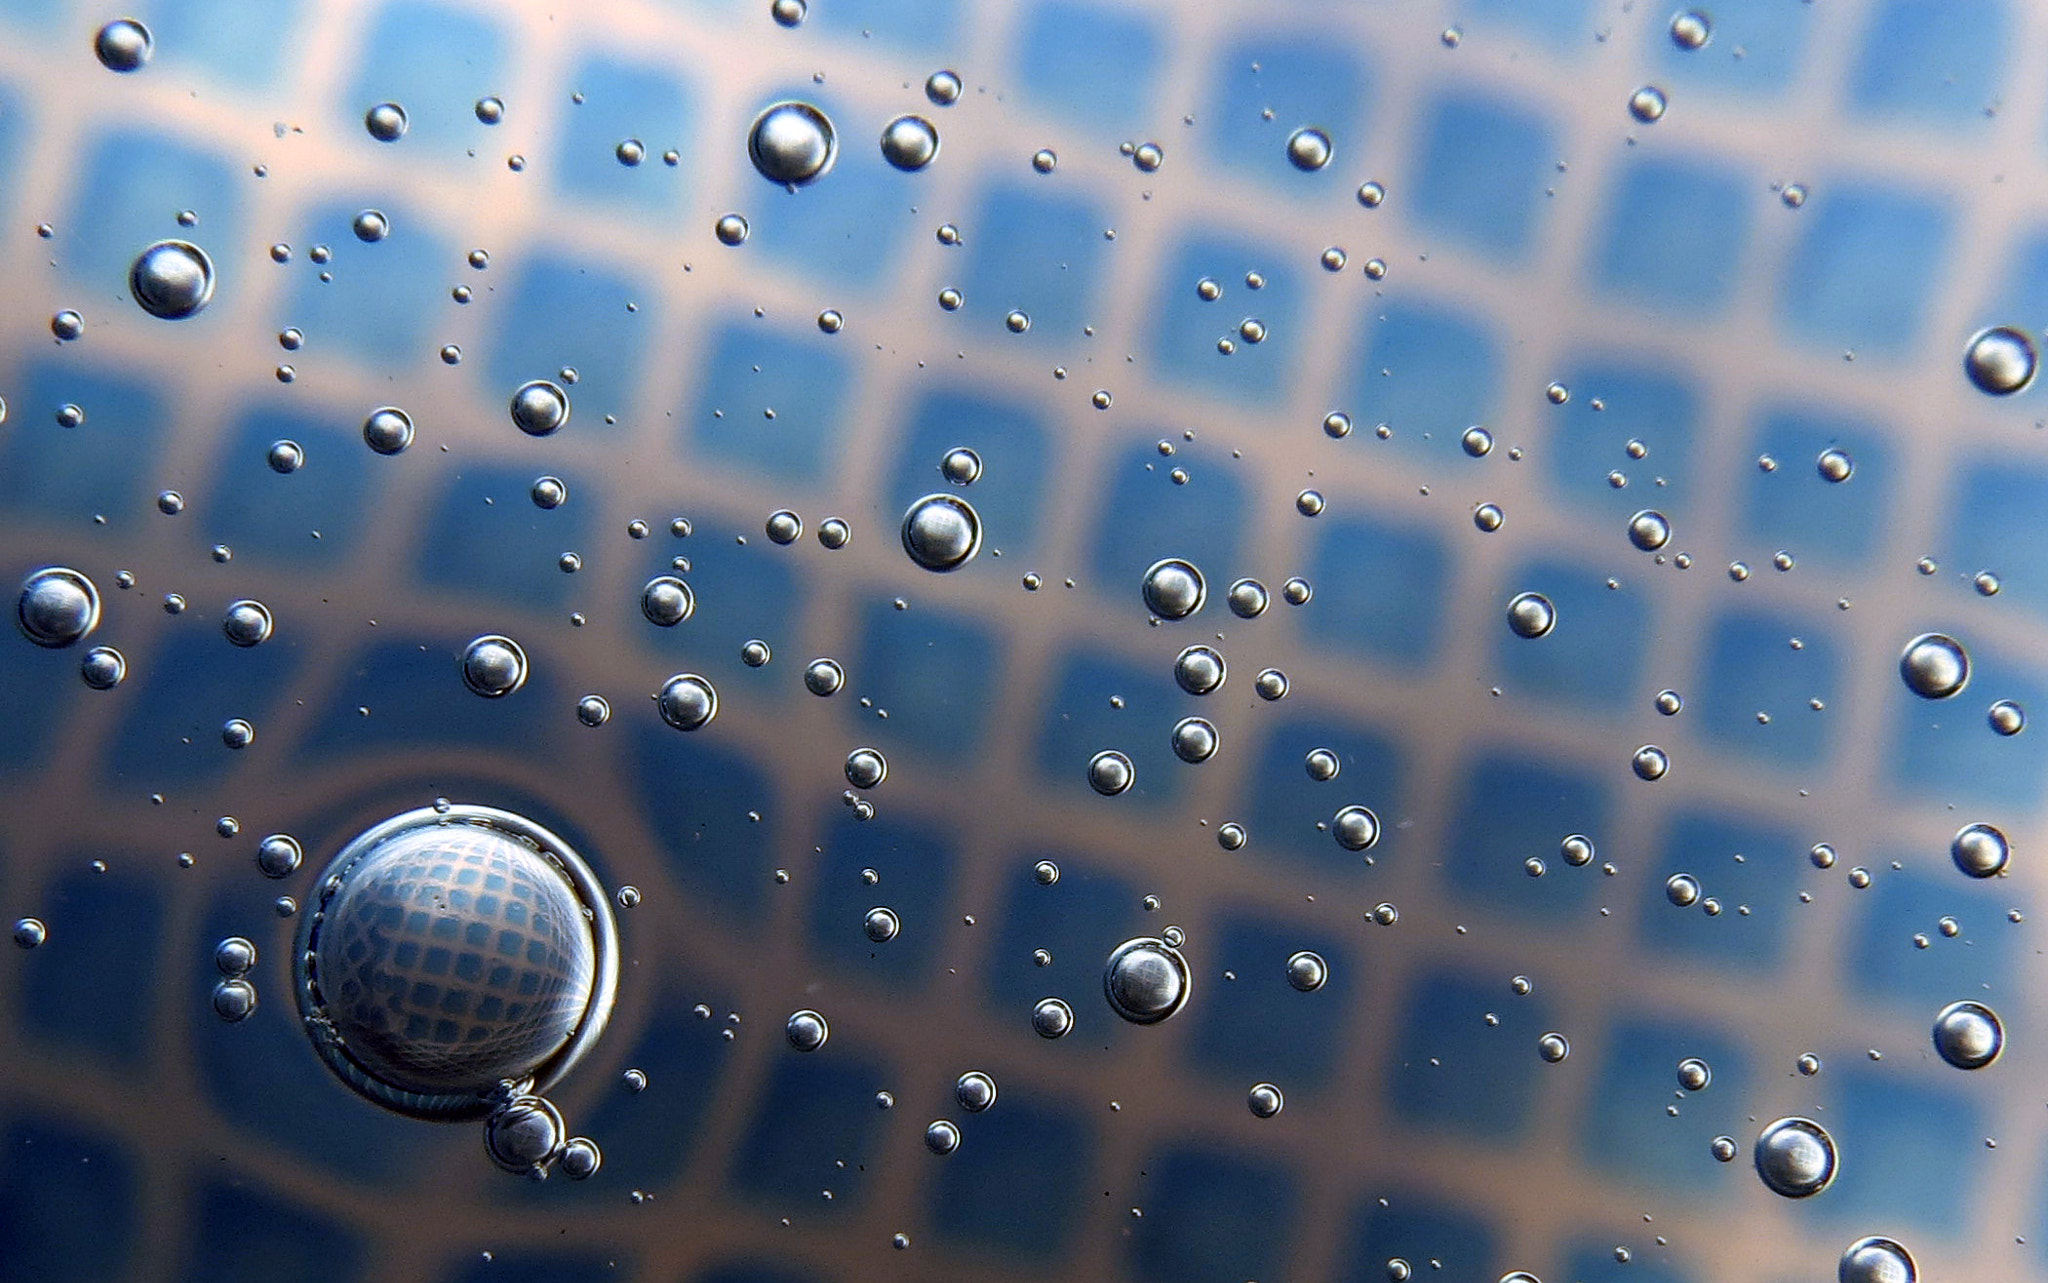 Photograph Wet Universe by lIquIdrIgIdIty ® on 500px